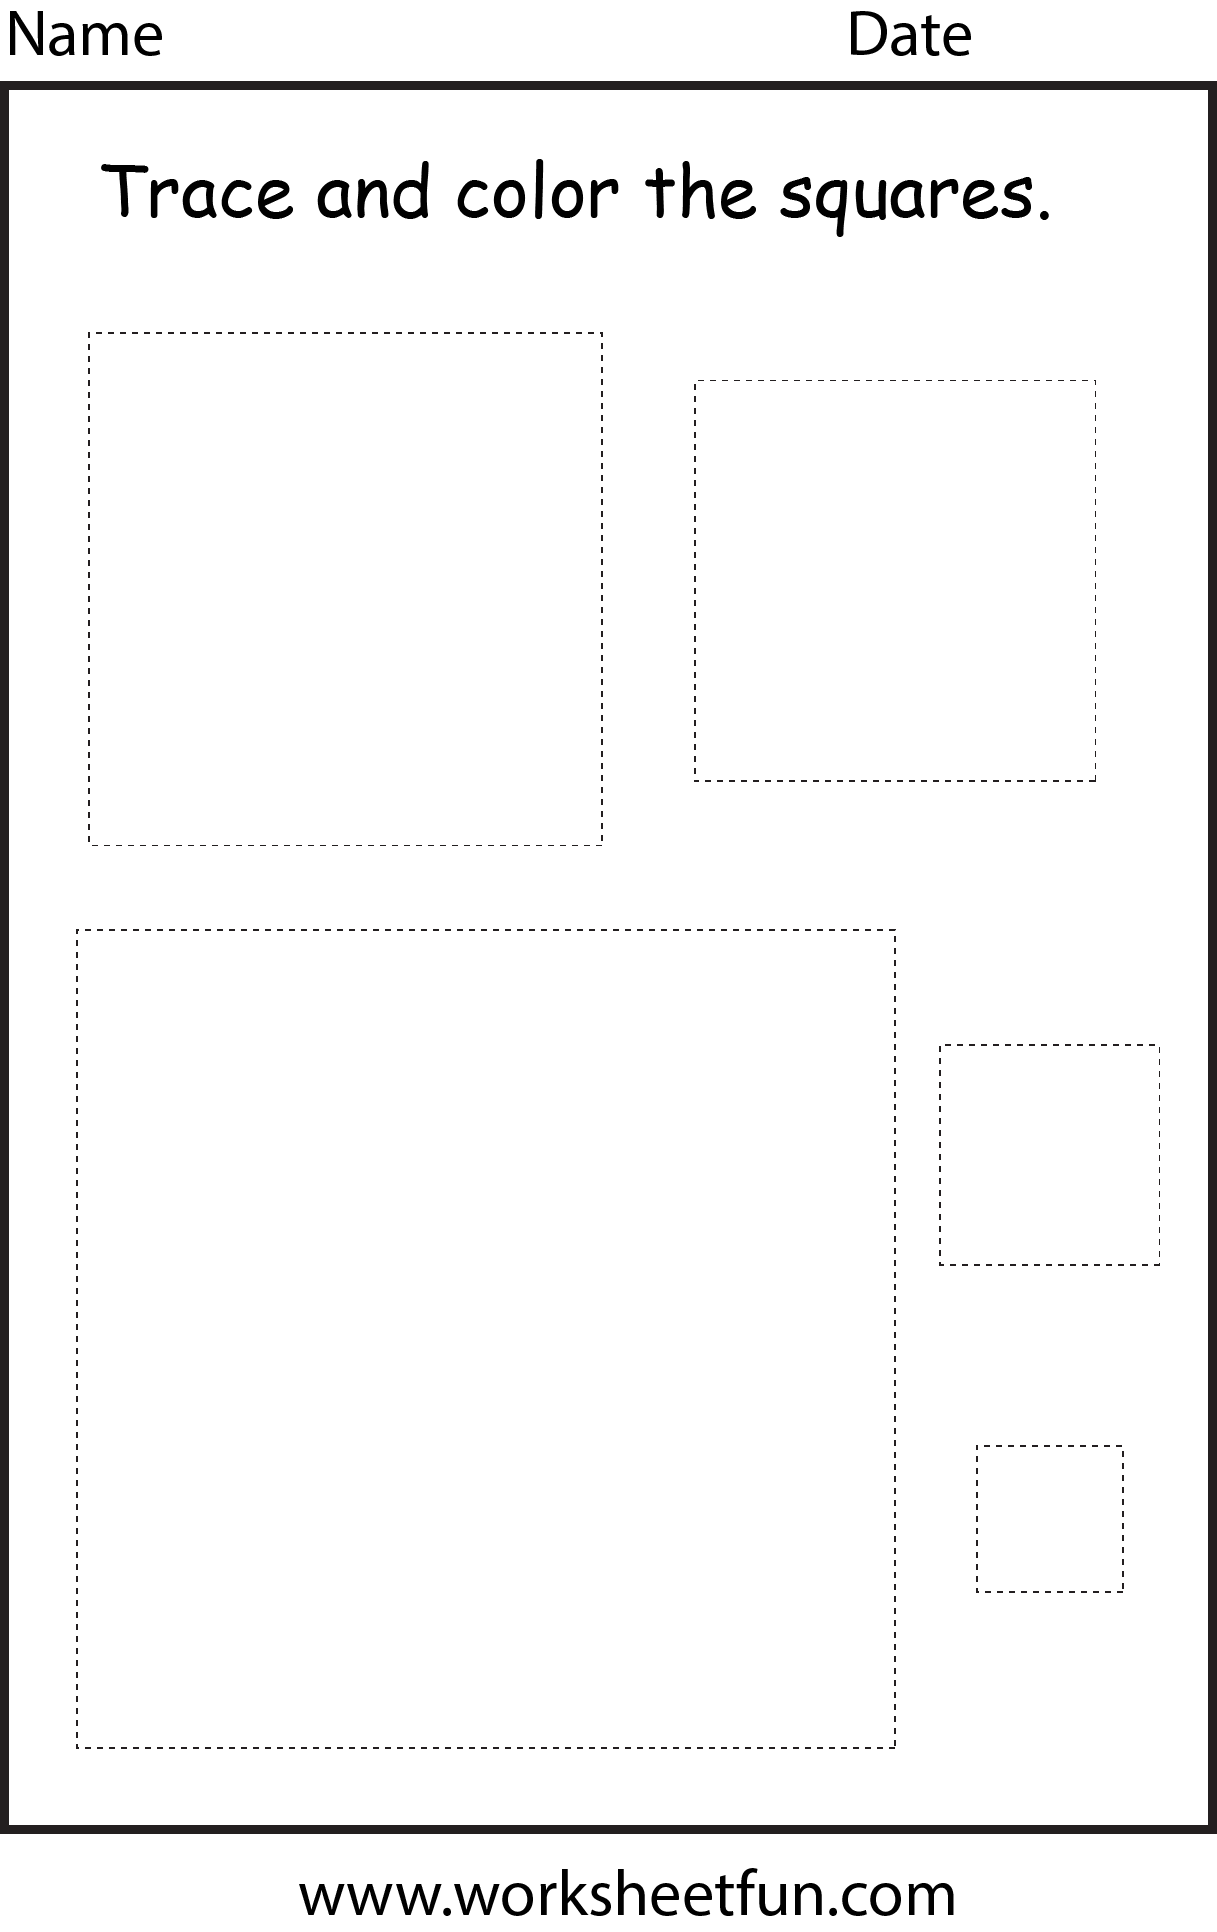 hight resolution of Pin By Nellene On Author's Purpose Worksheet   Geometry Worksheets on Best  Worksheets Collection 8106